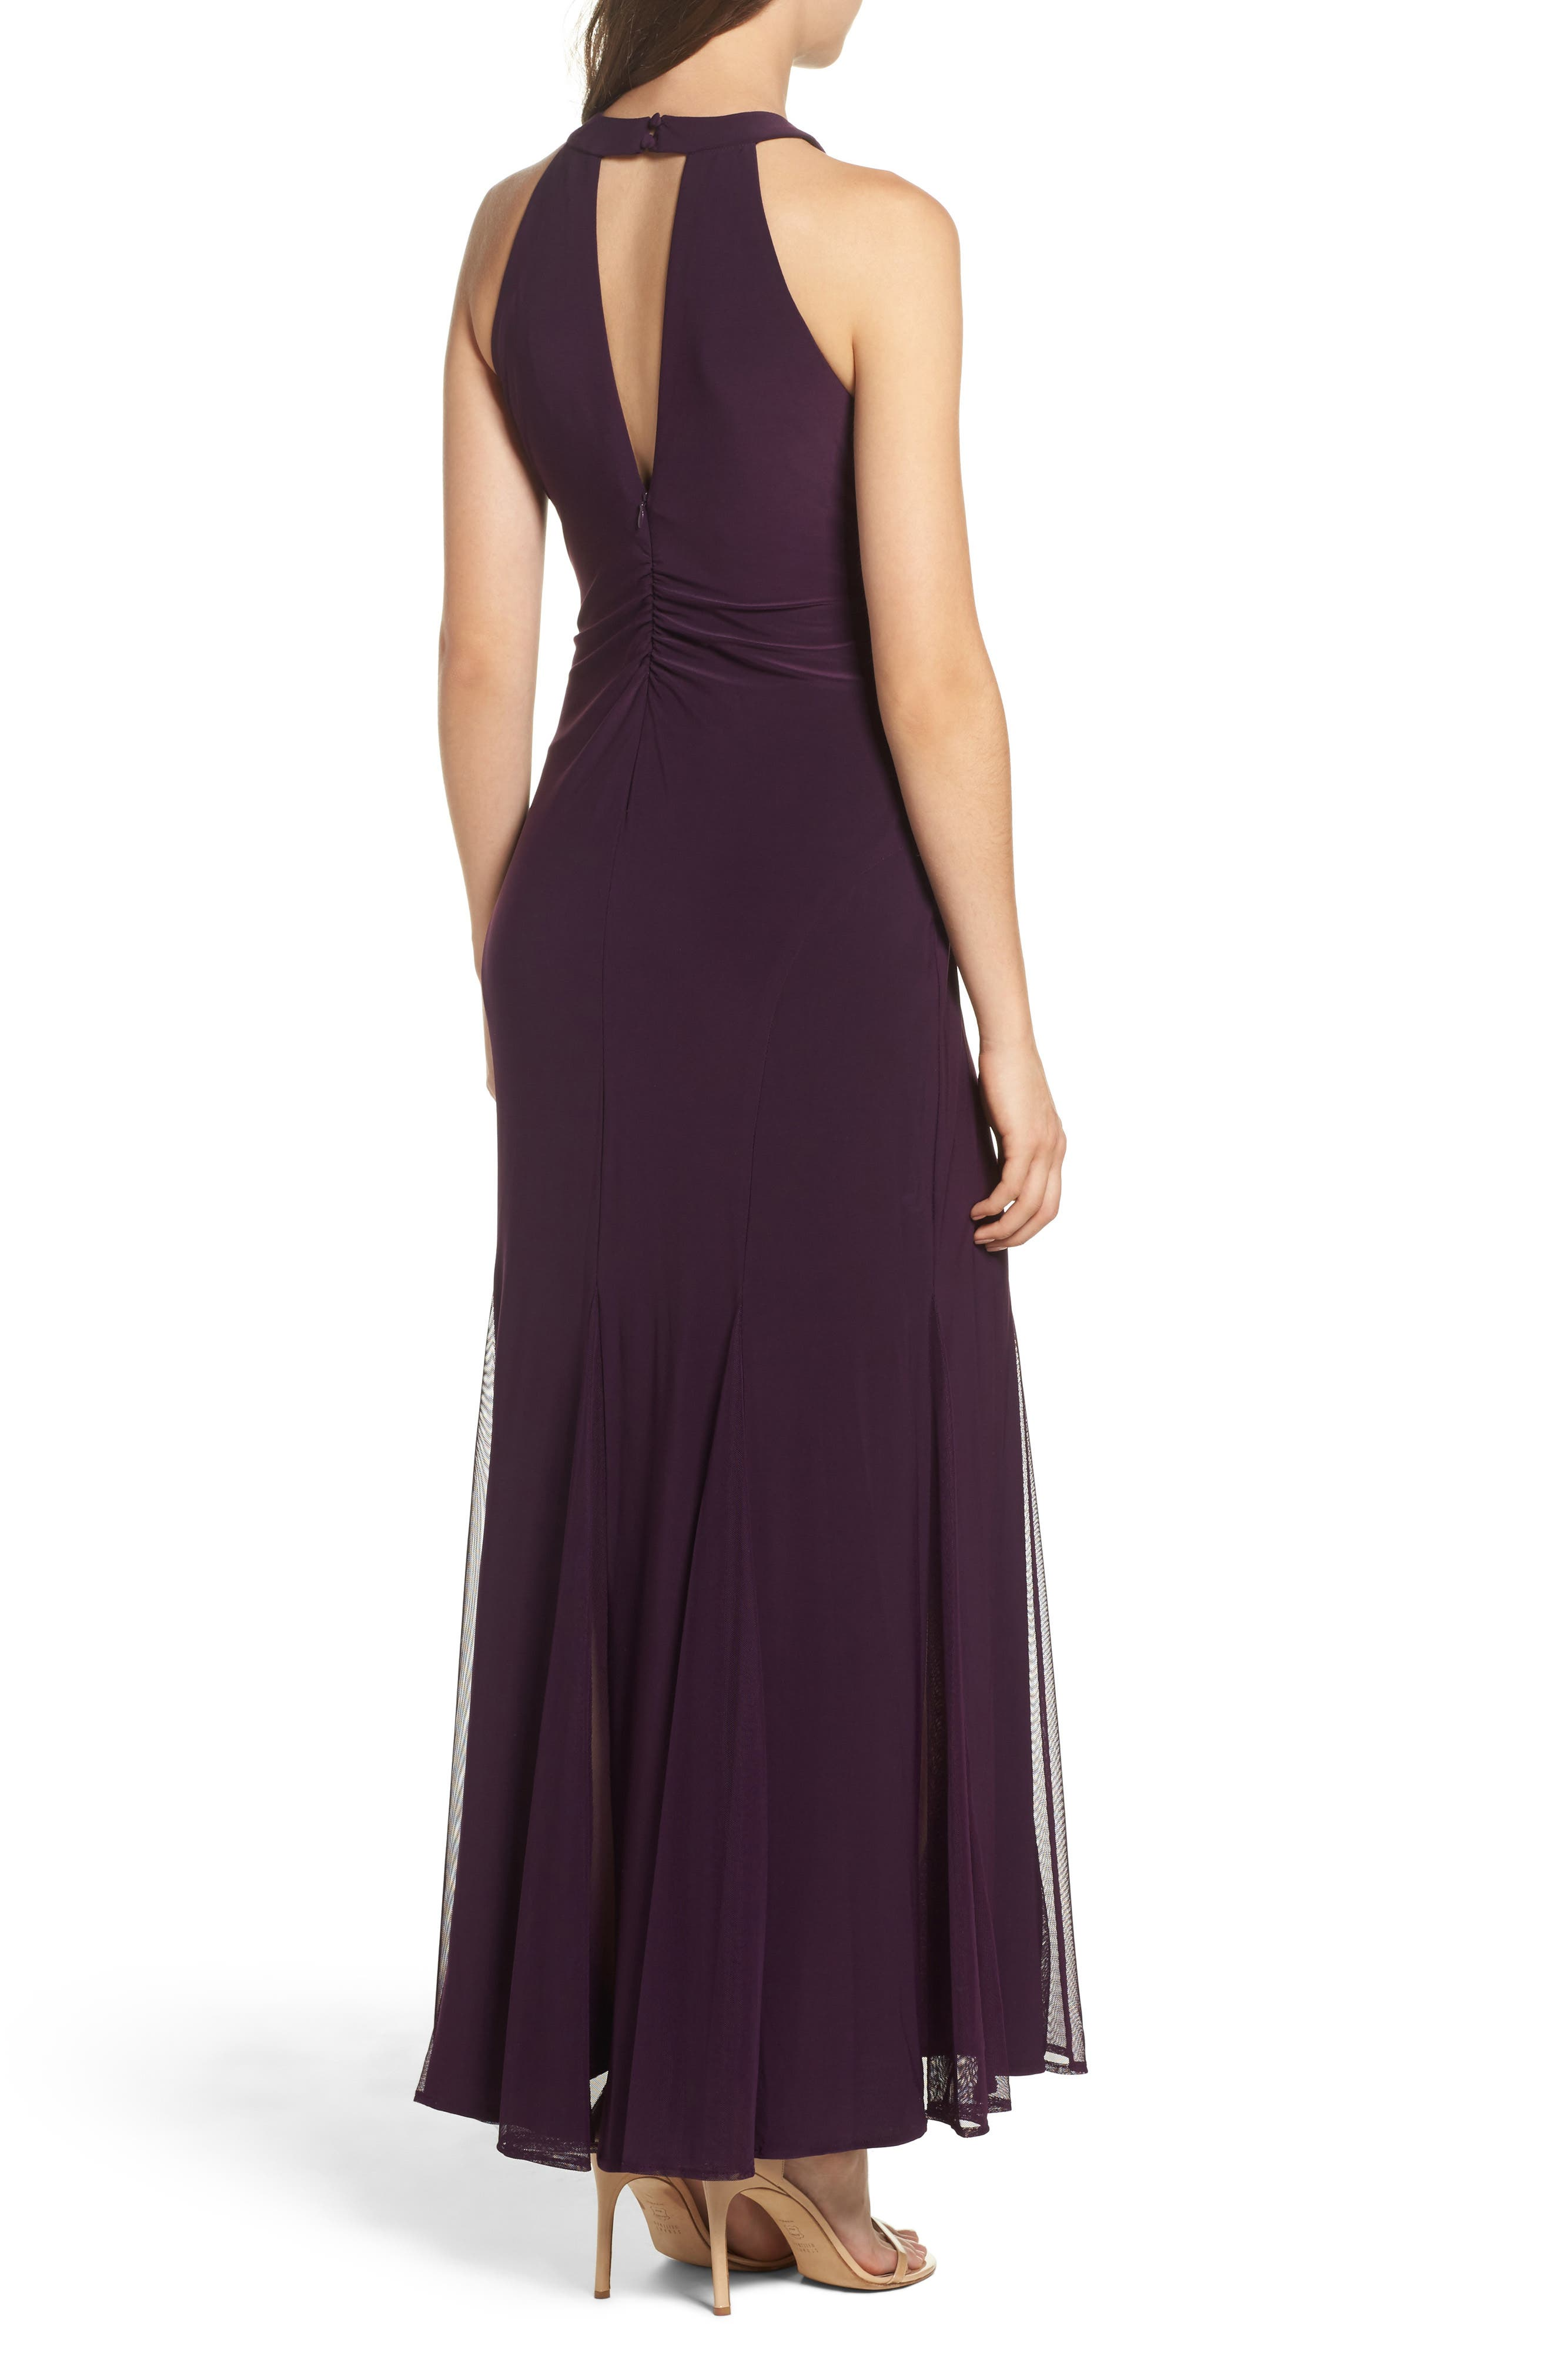 Mesh Insert Halter Neck Mermaid Dress,                             Alternate thumbnail 2, color,                             Plum